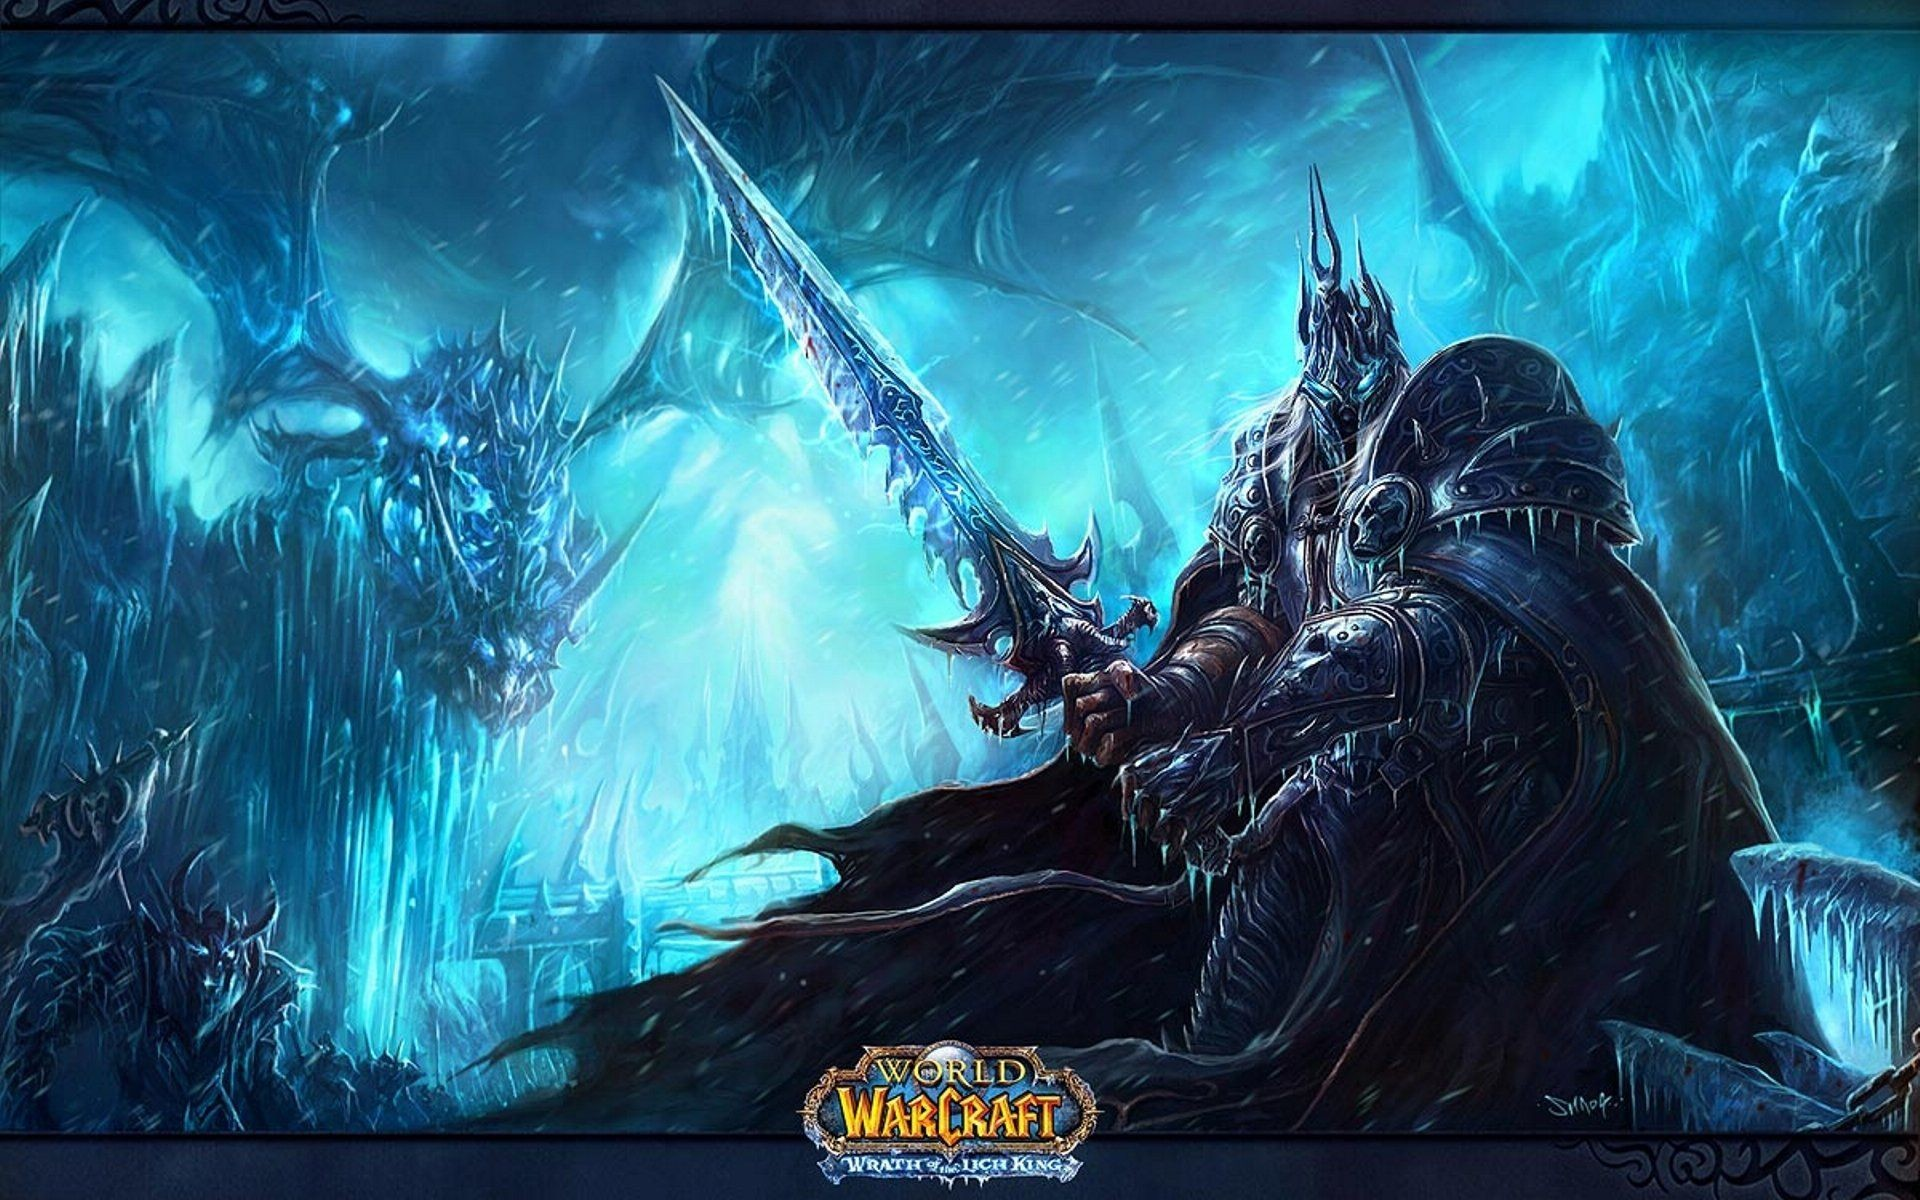 Lich king wallpaper 74 images - King wallpaper ...